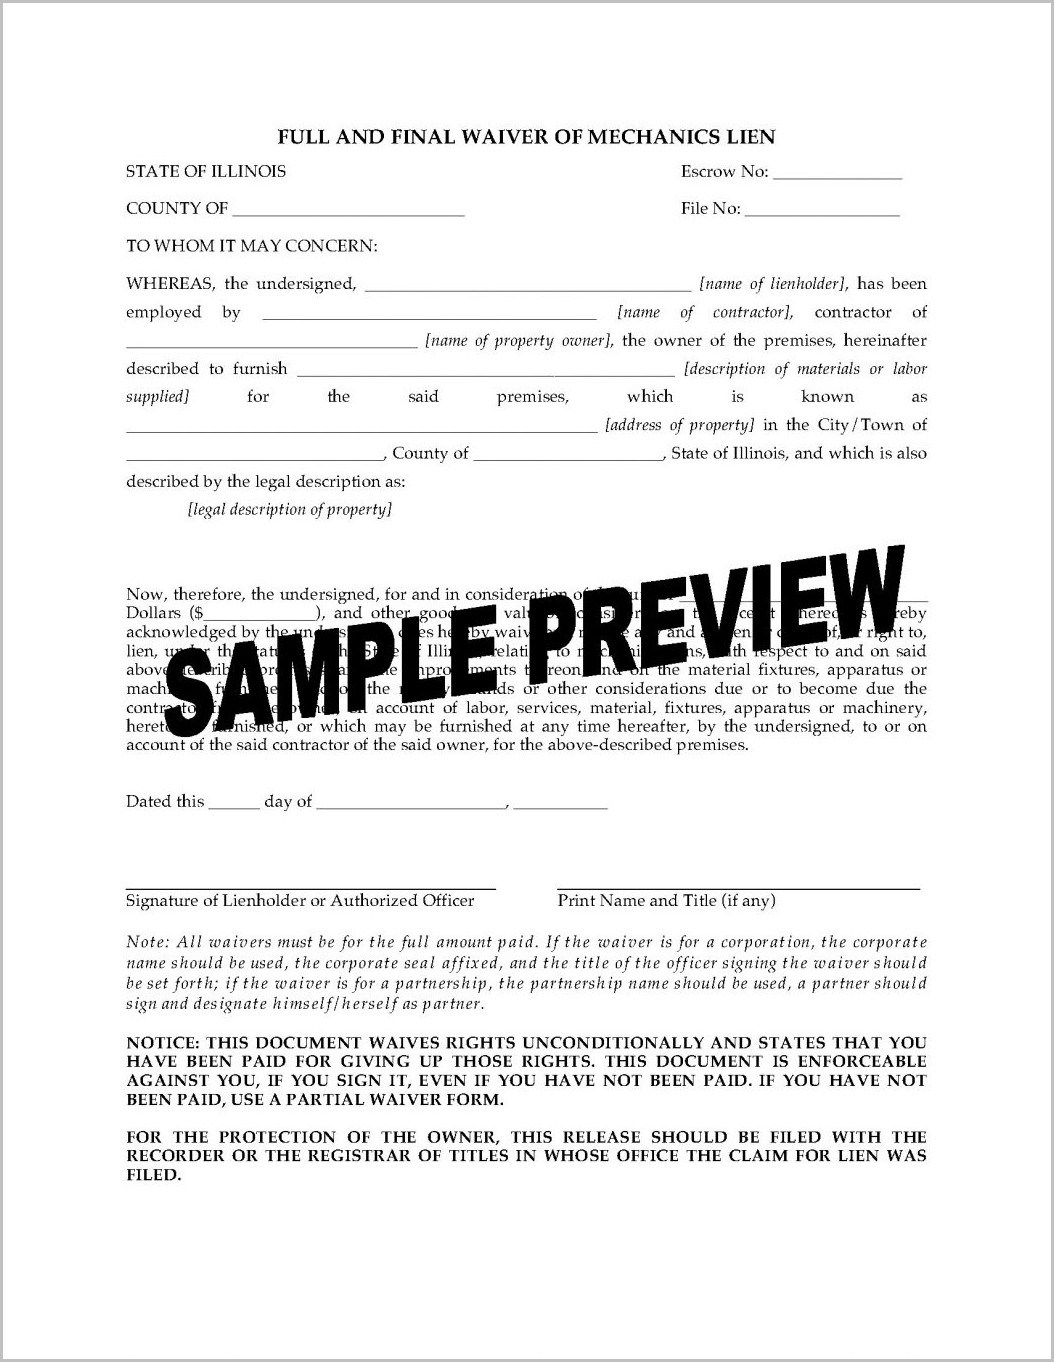 Texas Mechanic's Lien Title